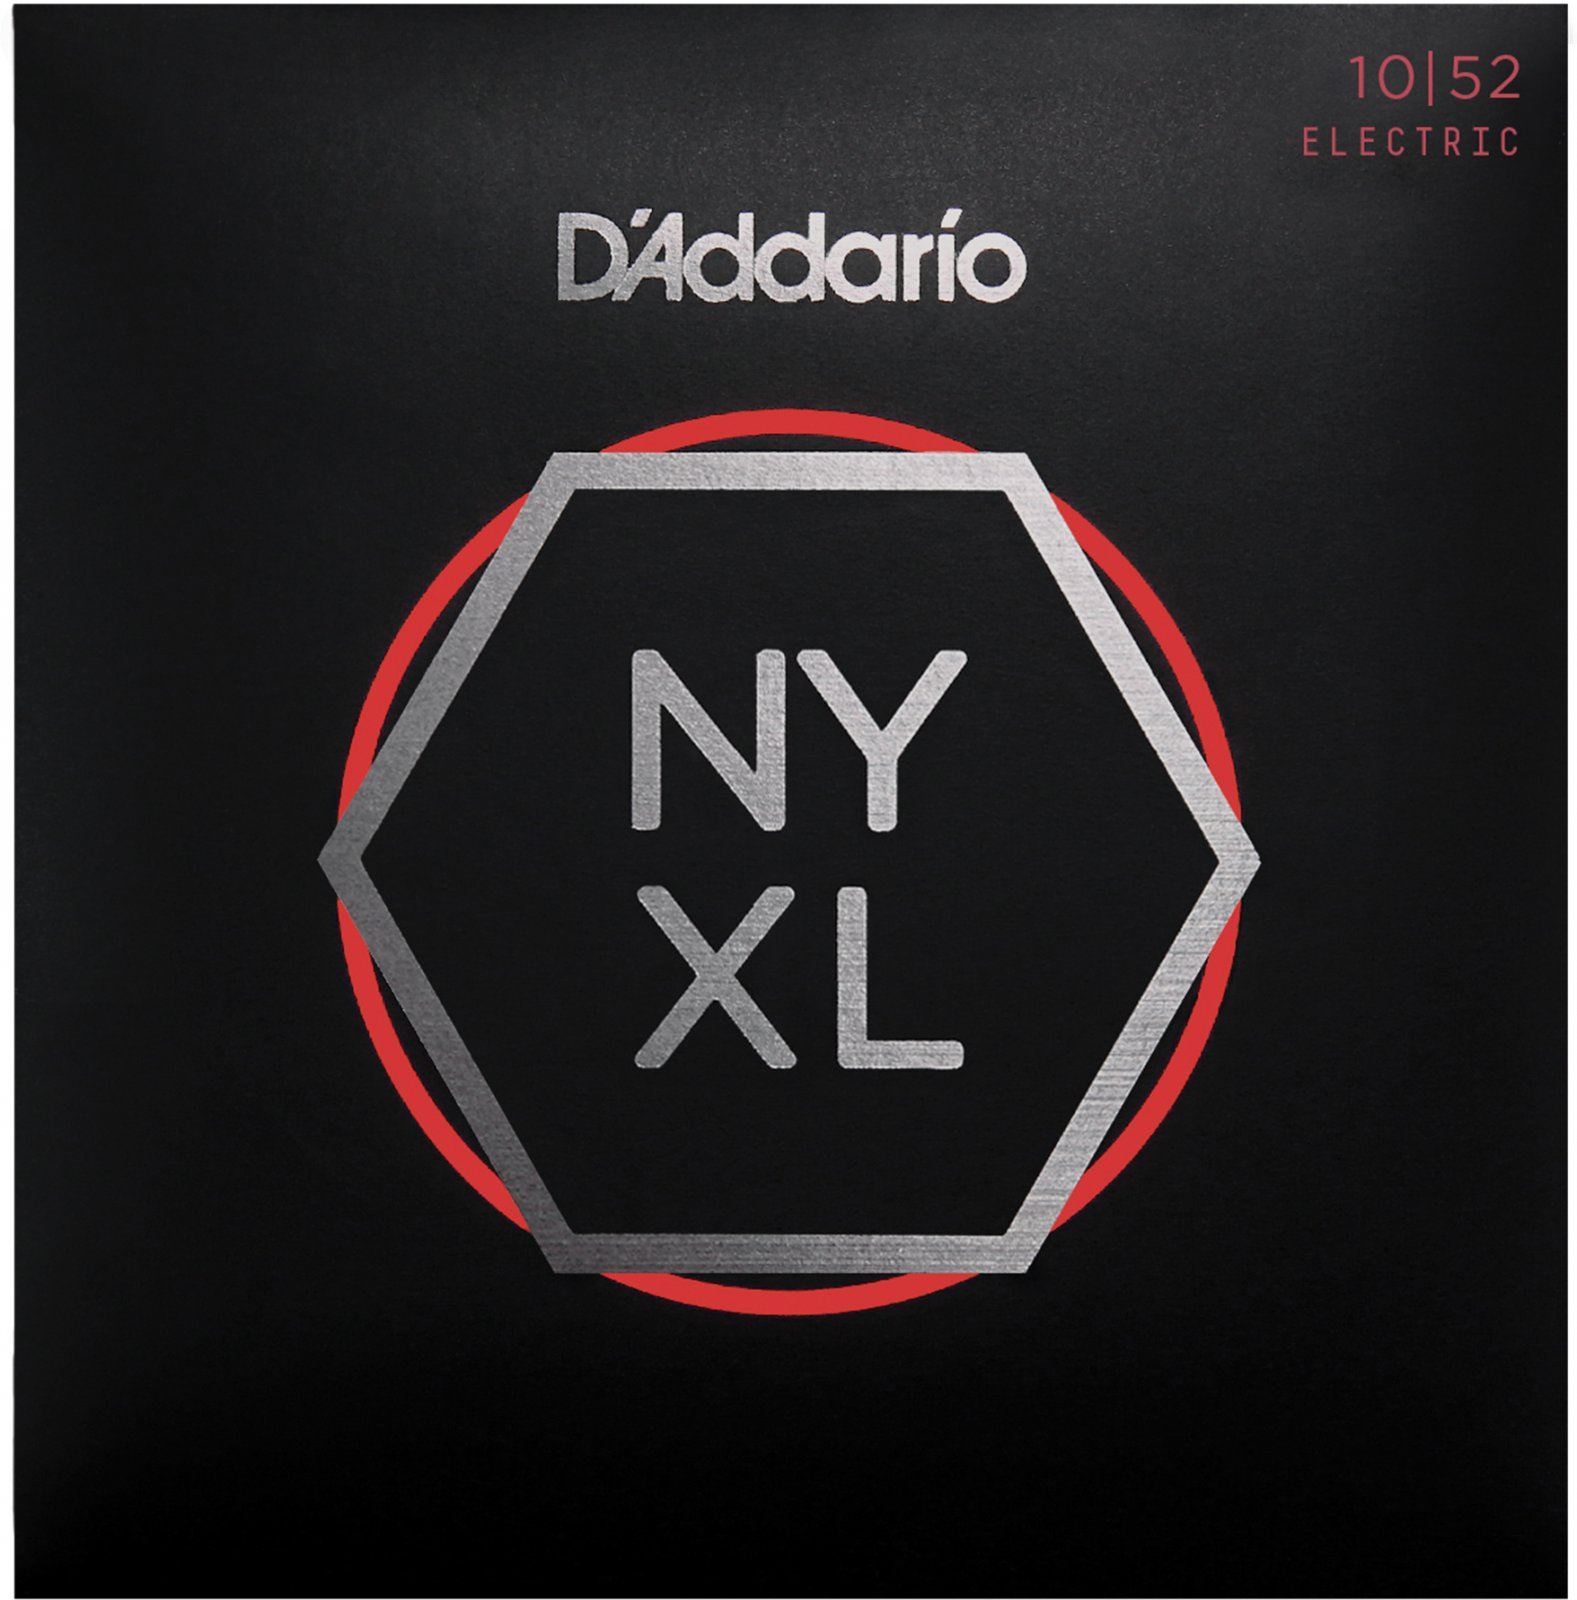 D'Addario NYXL1052 Nickel Wound Electric Guitar Strings Light Top / Heavy Bottom 10-52